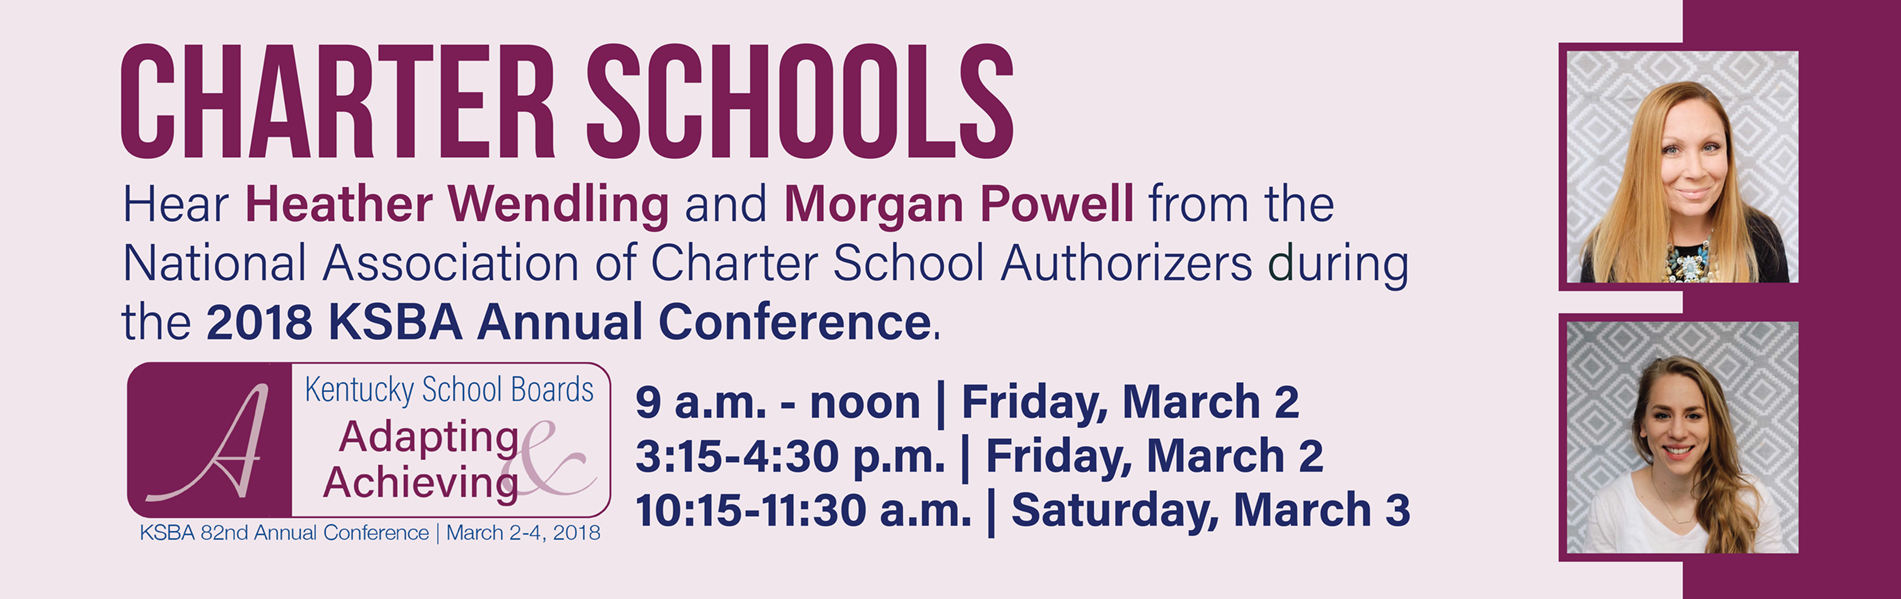 The National Association of Charter School Authorizers will present several sessions at the 2018 KSBA Annual Conference